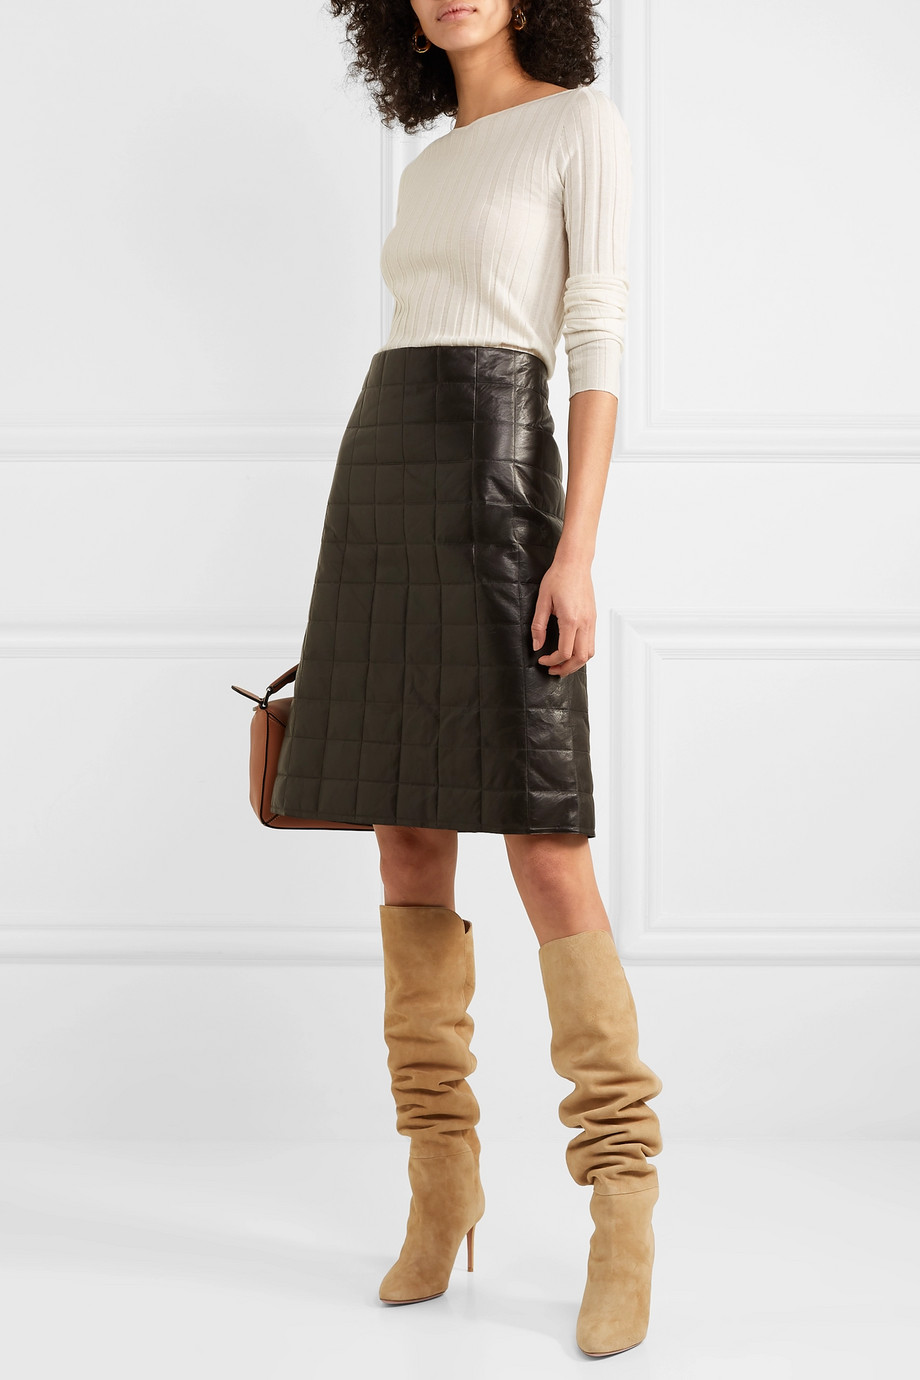 Spring Boots Trend 2019 - Boots with skirts